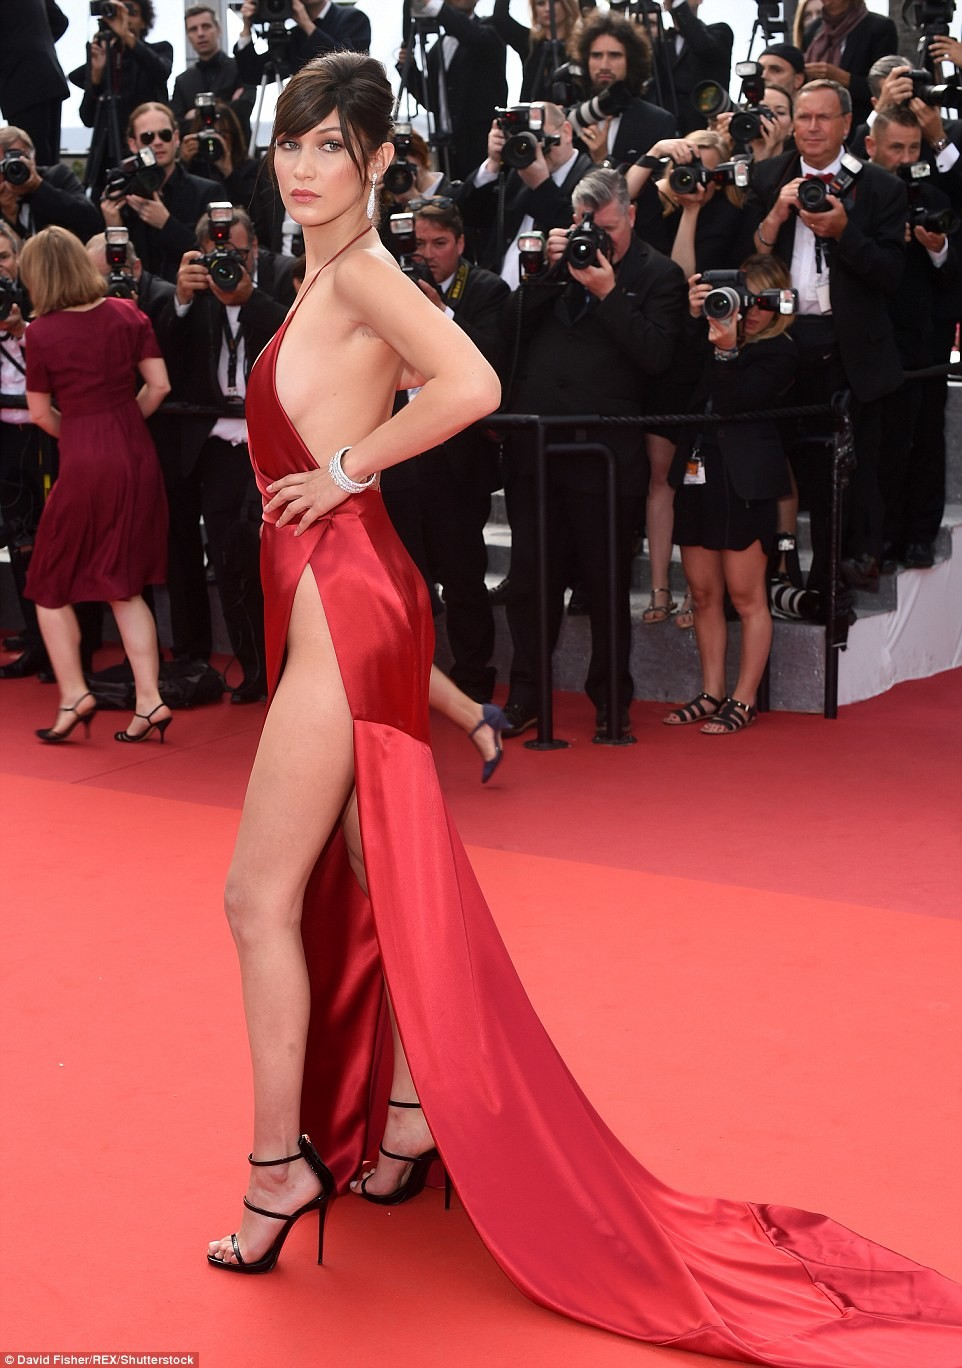 bella hadid red dress cannes 2016 (8)